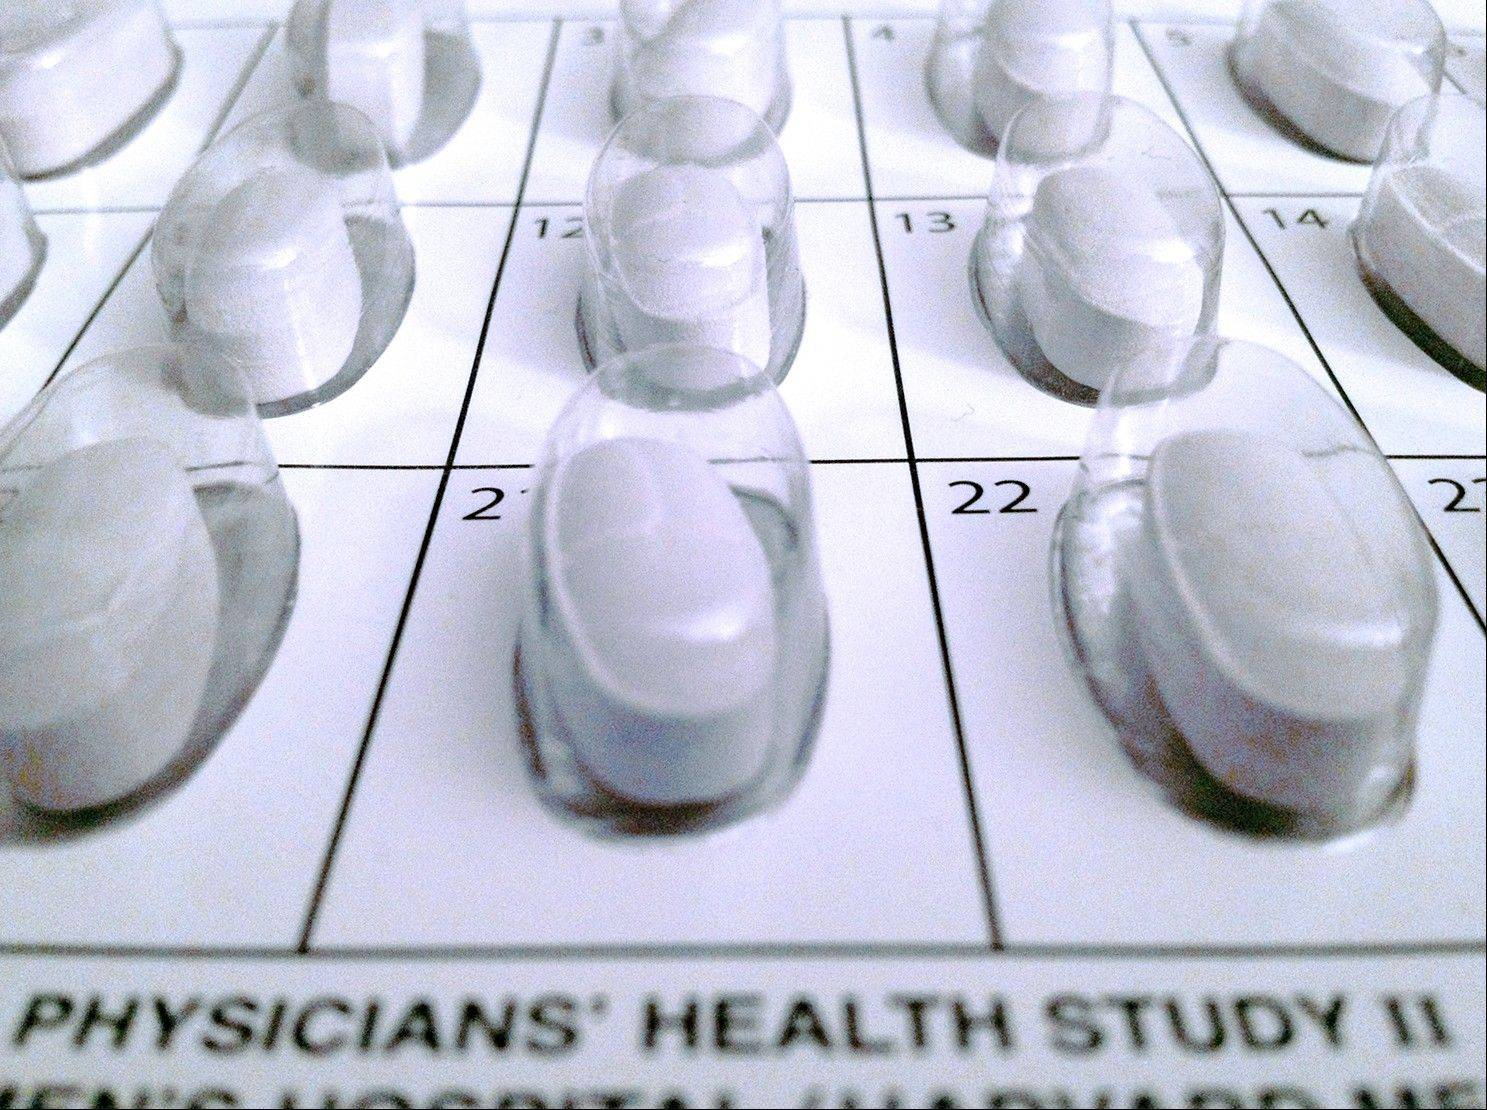 America�s favorite dietary supplements, multivitamins, modestly lowered the risk of developing cancer in healthy male doctors who took them daily for more than a decade, the first large study to test these pills has found. The study was published online in the Journal of the American Medical Association on Wednesday, Oct. 17, 2012.